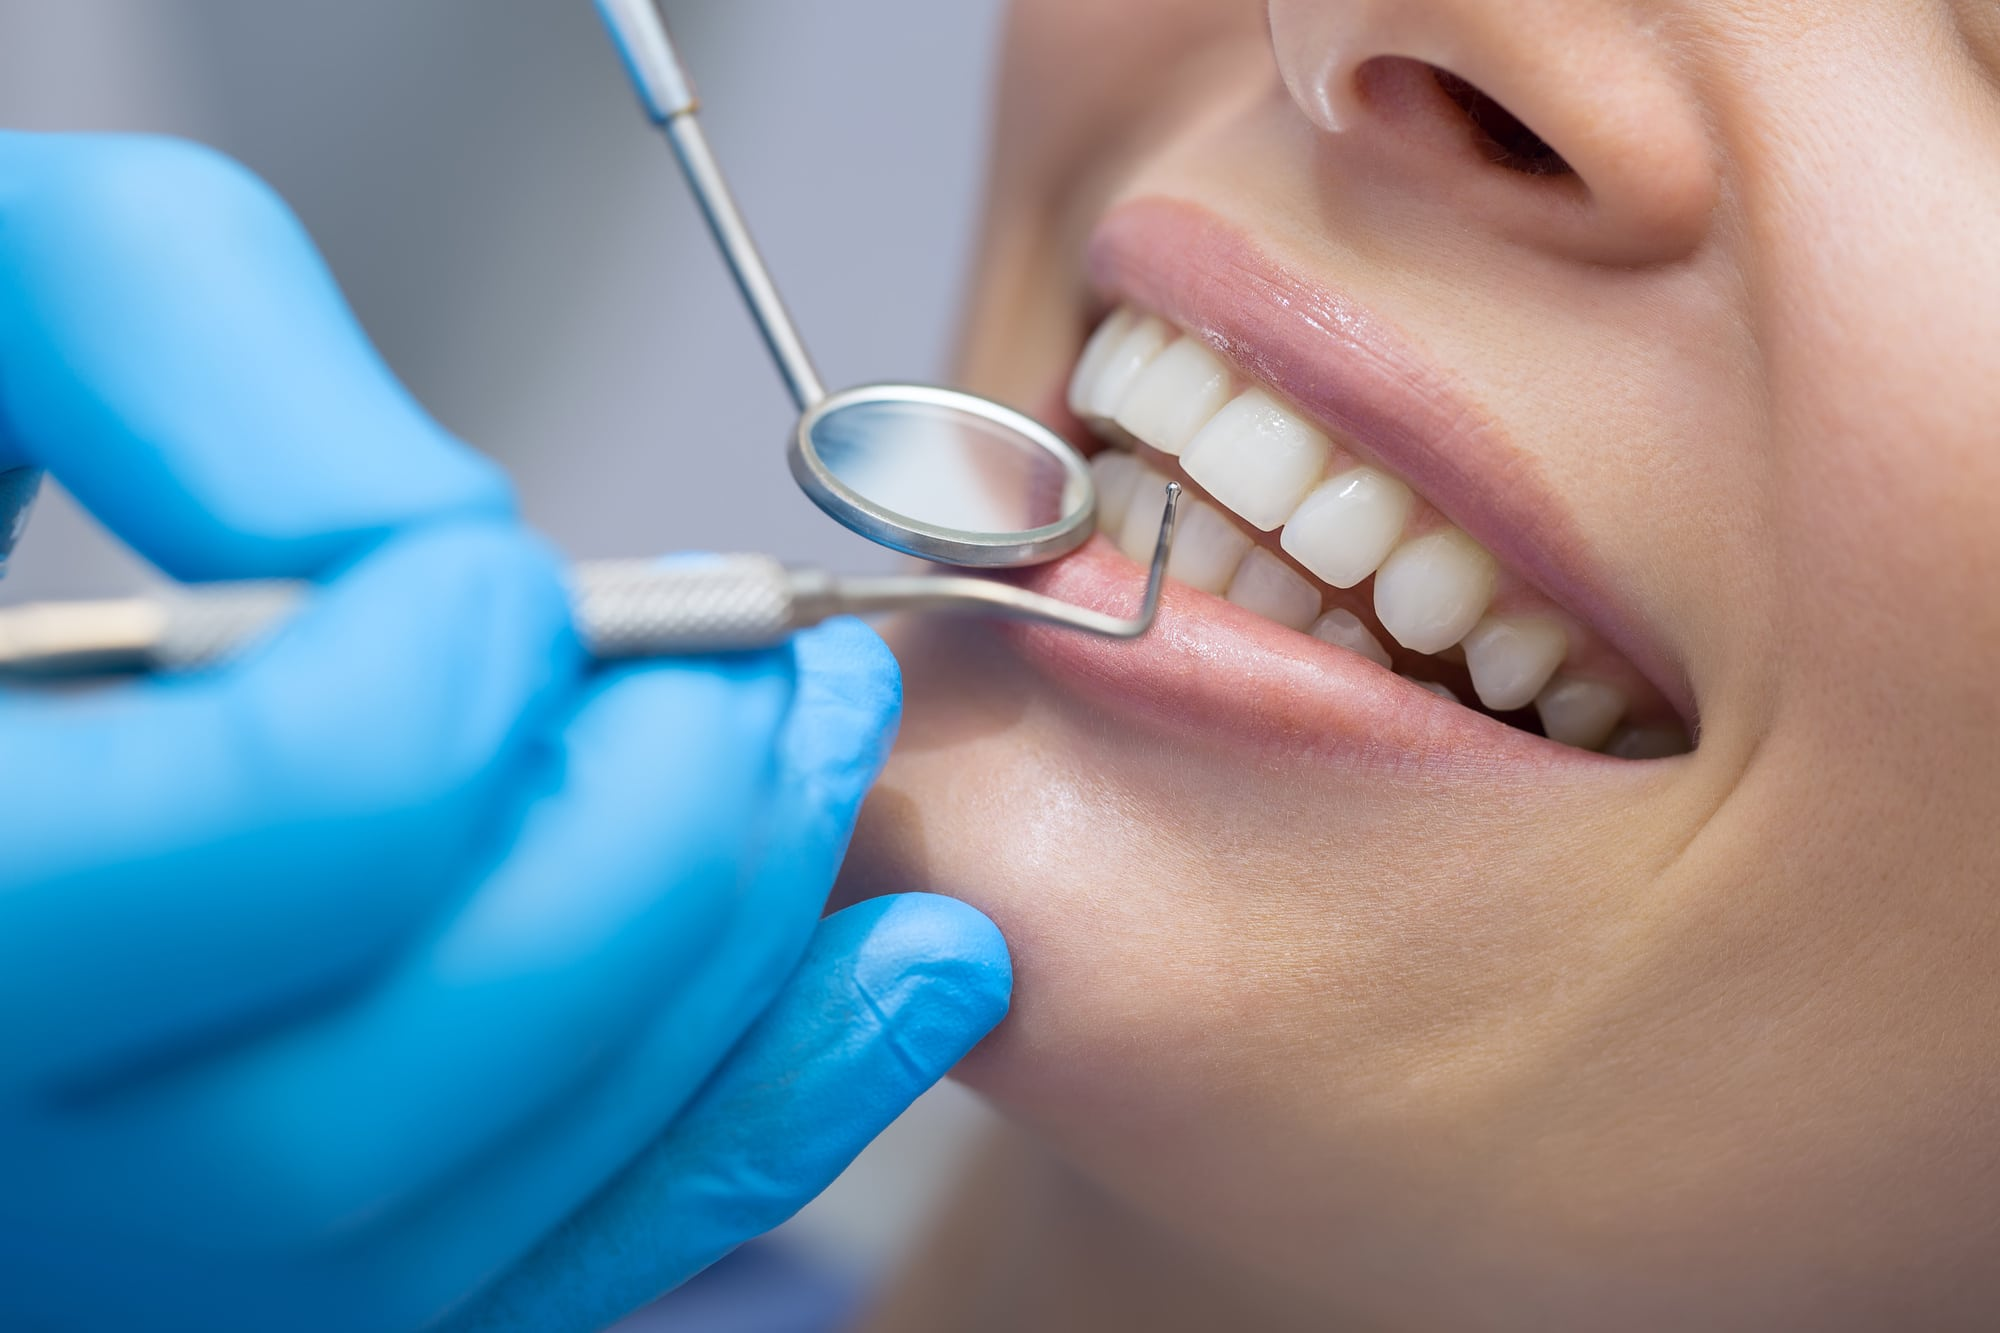 What You Should Know About Periodontal Disease